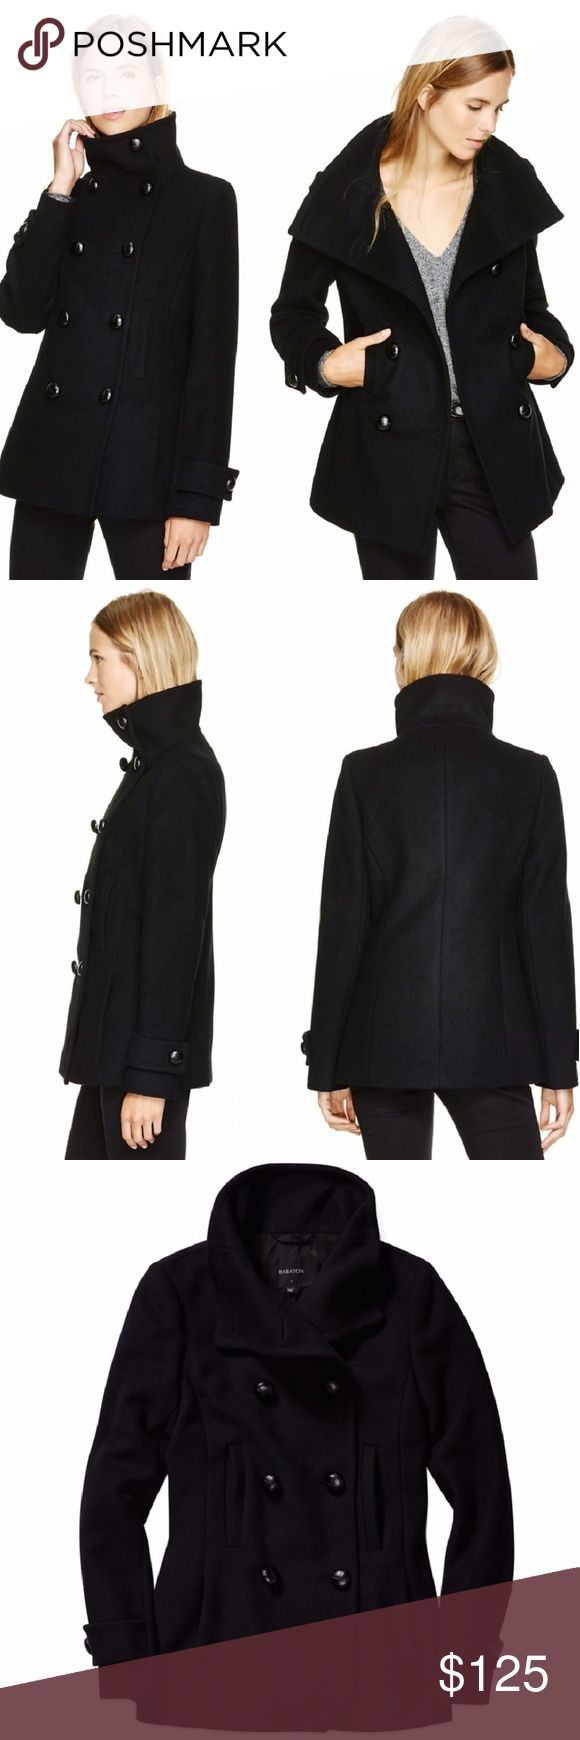 Aritzia Howell Wool & Cashmere Coat Tailored using a luxurious Italian wool blend, this peacoat has a slim, sleek silhouette. The seams and edges are finished with a bespoke stitching technique to keep them flat and defined. Button the leather-wrapped buttons all the way for a funnel-neck look.  Made from a beautifully warm wool blend with cashmere for added softness 70% Wool, 20% Polyamide, 10% Cashmere Lining: 100% Cupro Rayon Fabric from Italy  Excellent condition! Aritzia Jackets & Coats…